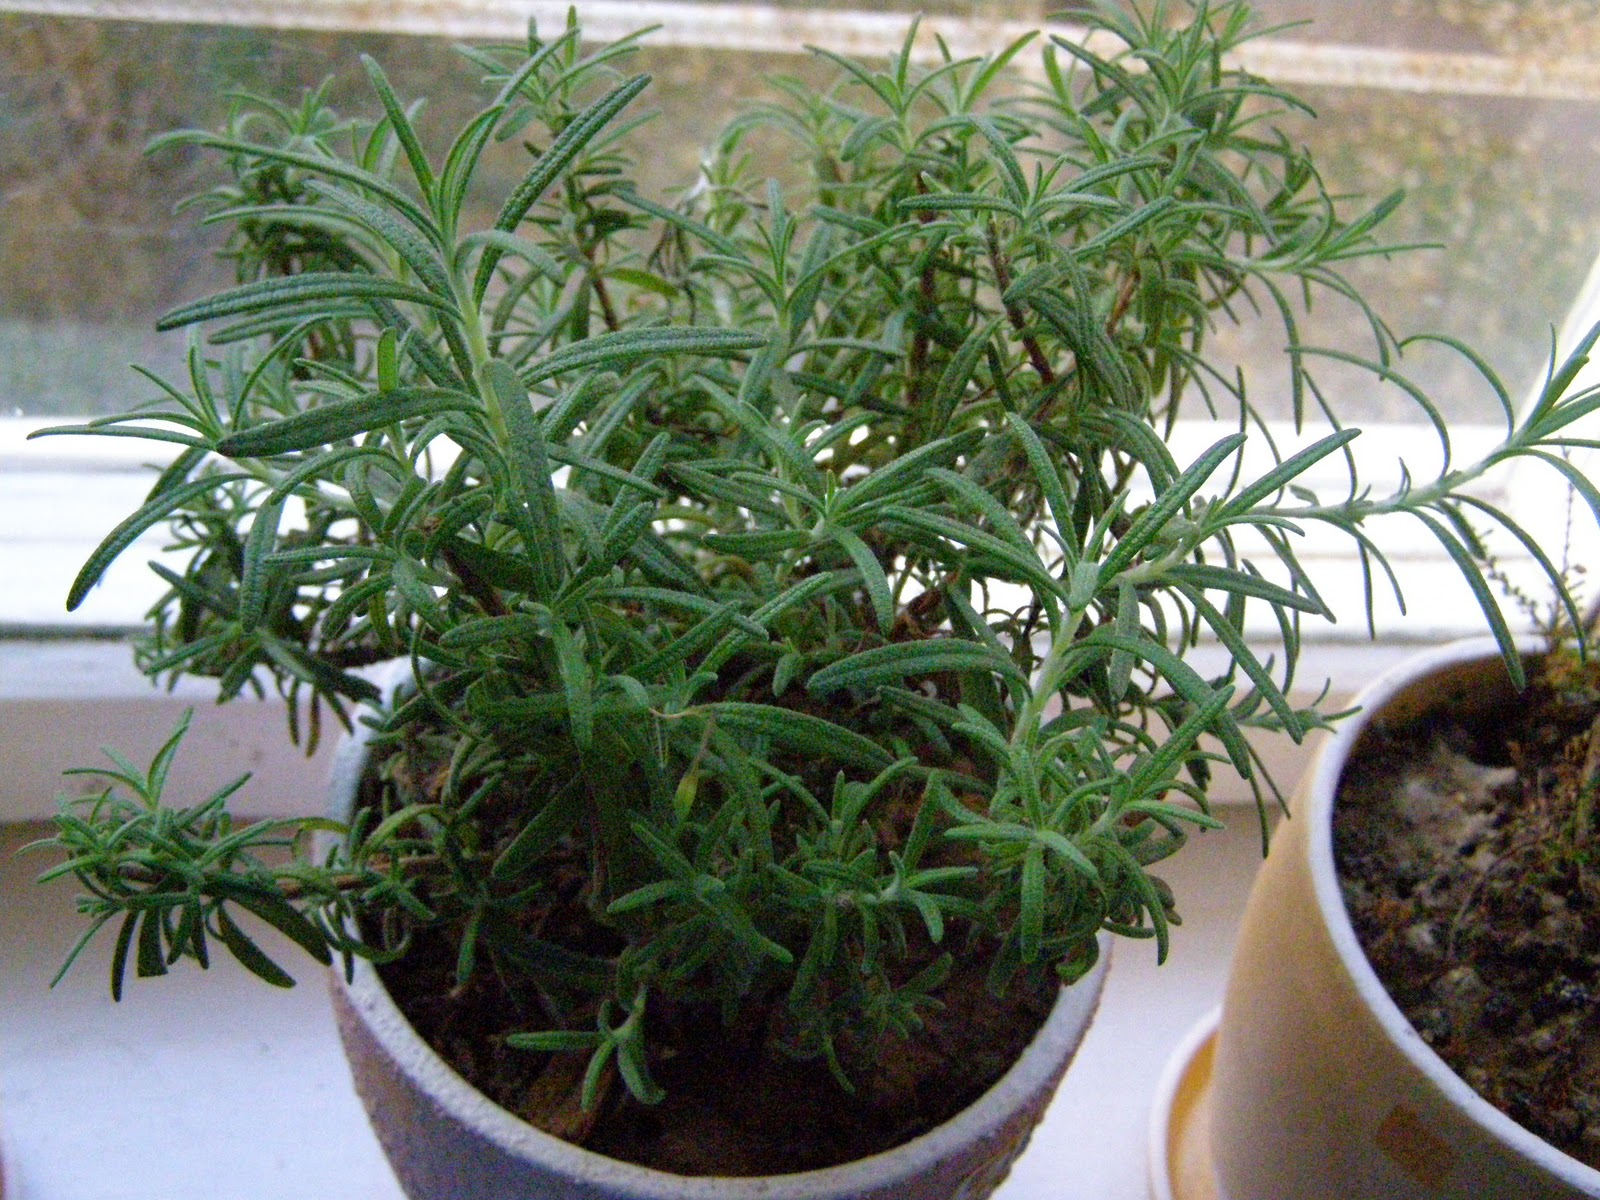 RE: Which herbs would you grow on your windowsill in winter?